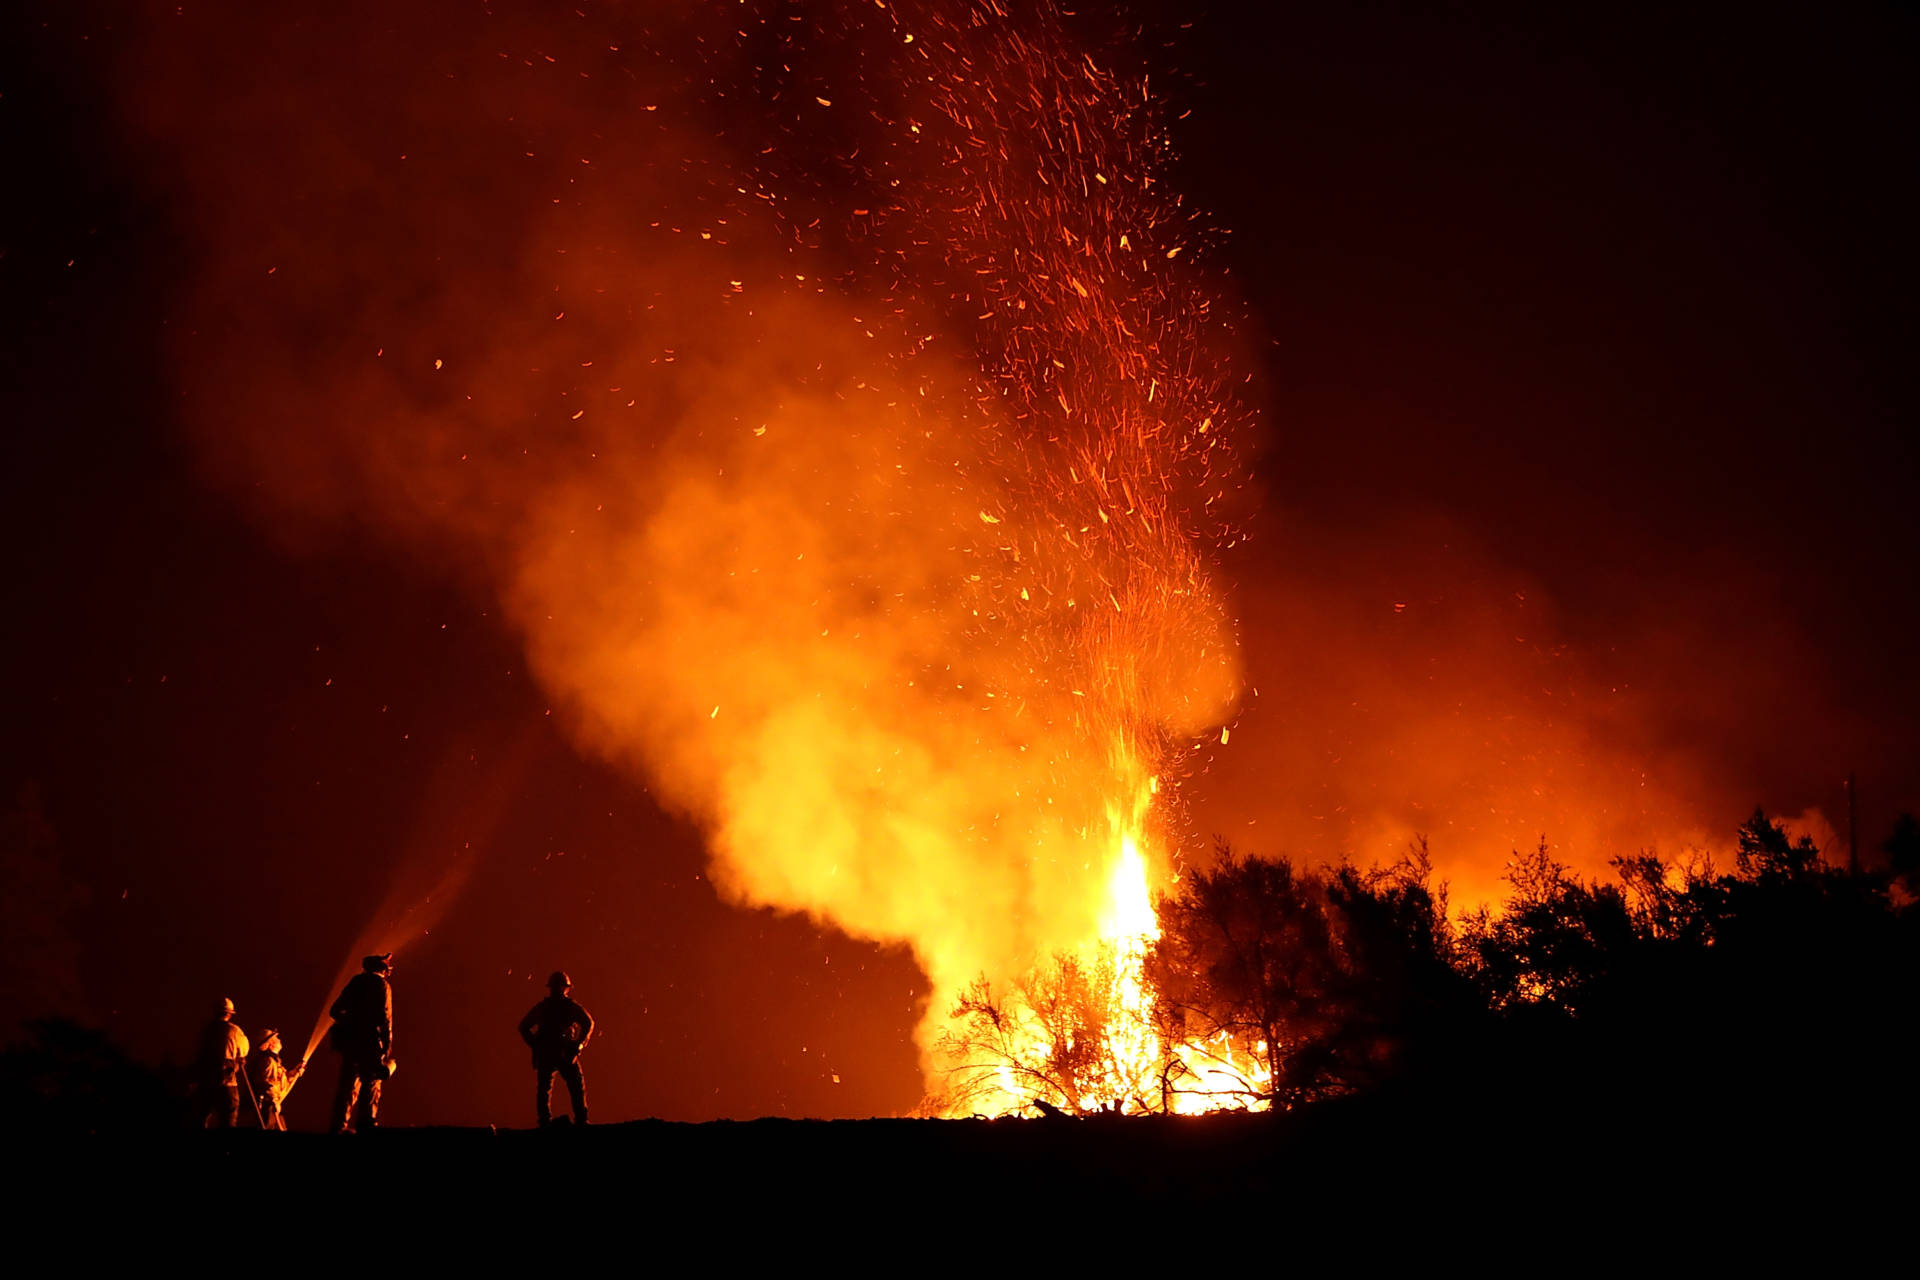 Cal Fire firefighters monitor a back fire as they battle the Medocino Complex fire on August 7, 2018 near Lodoga, California.     Justin Sullivan/Getty Images